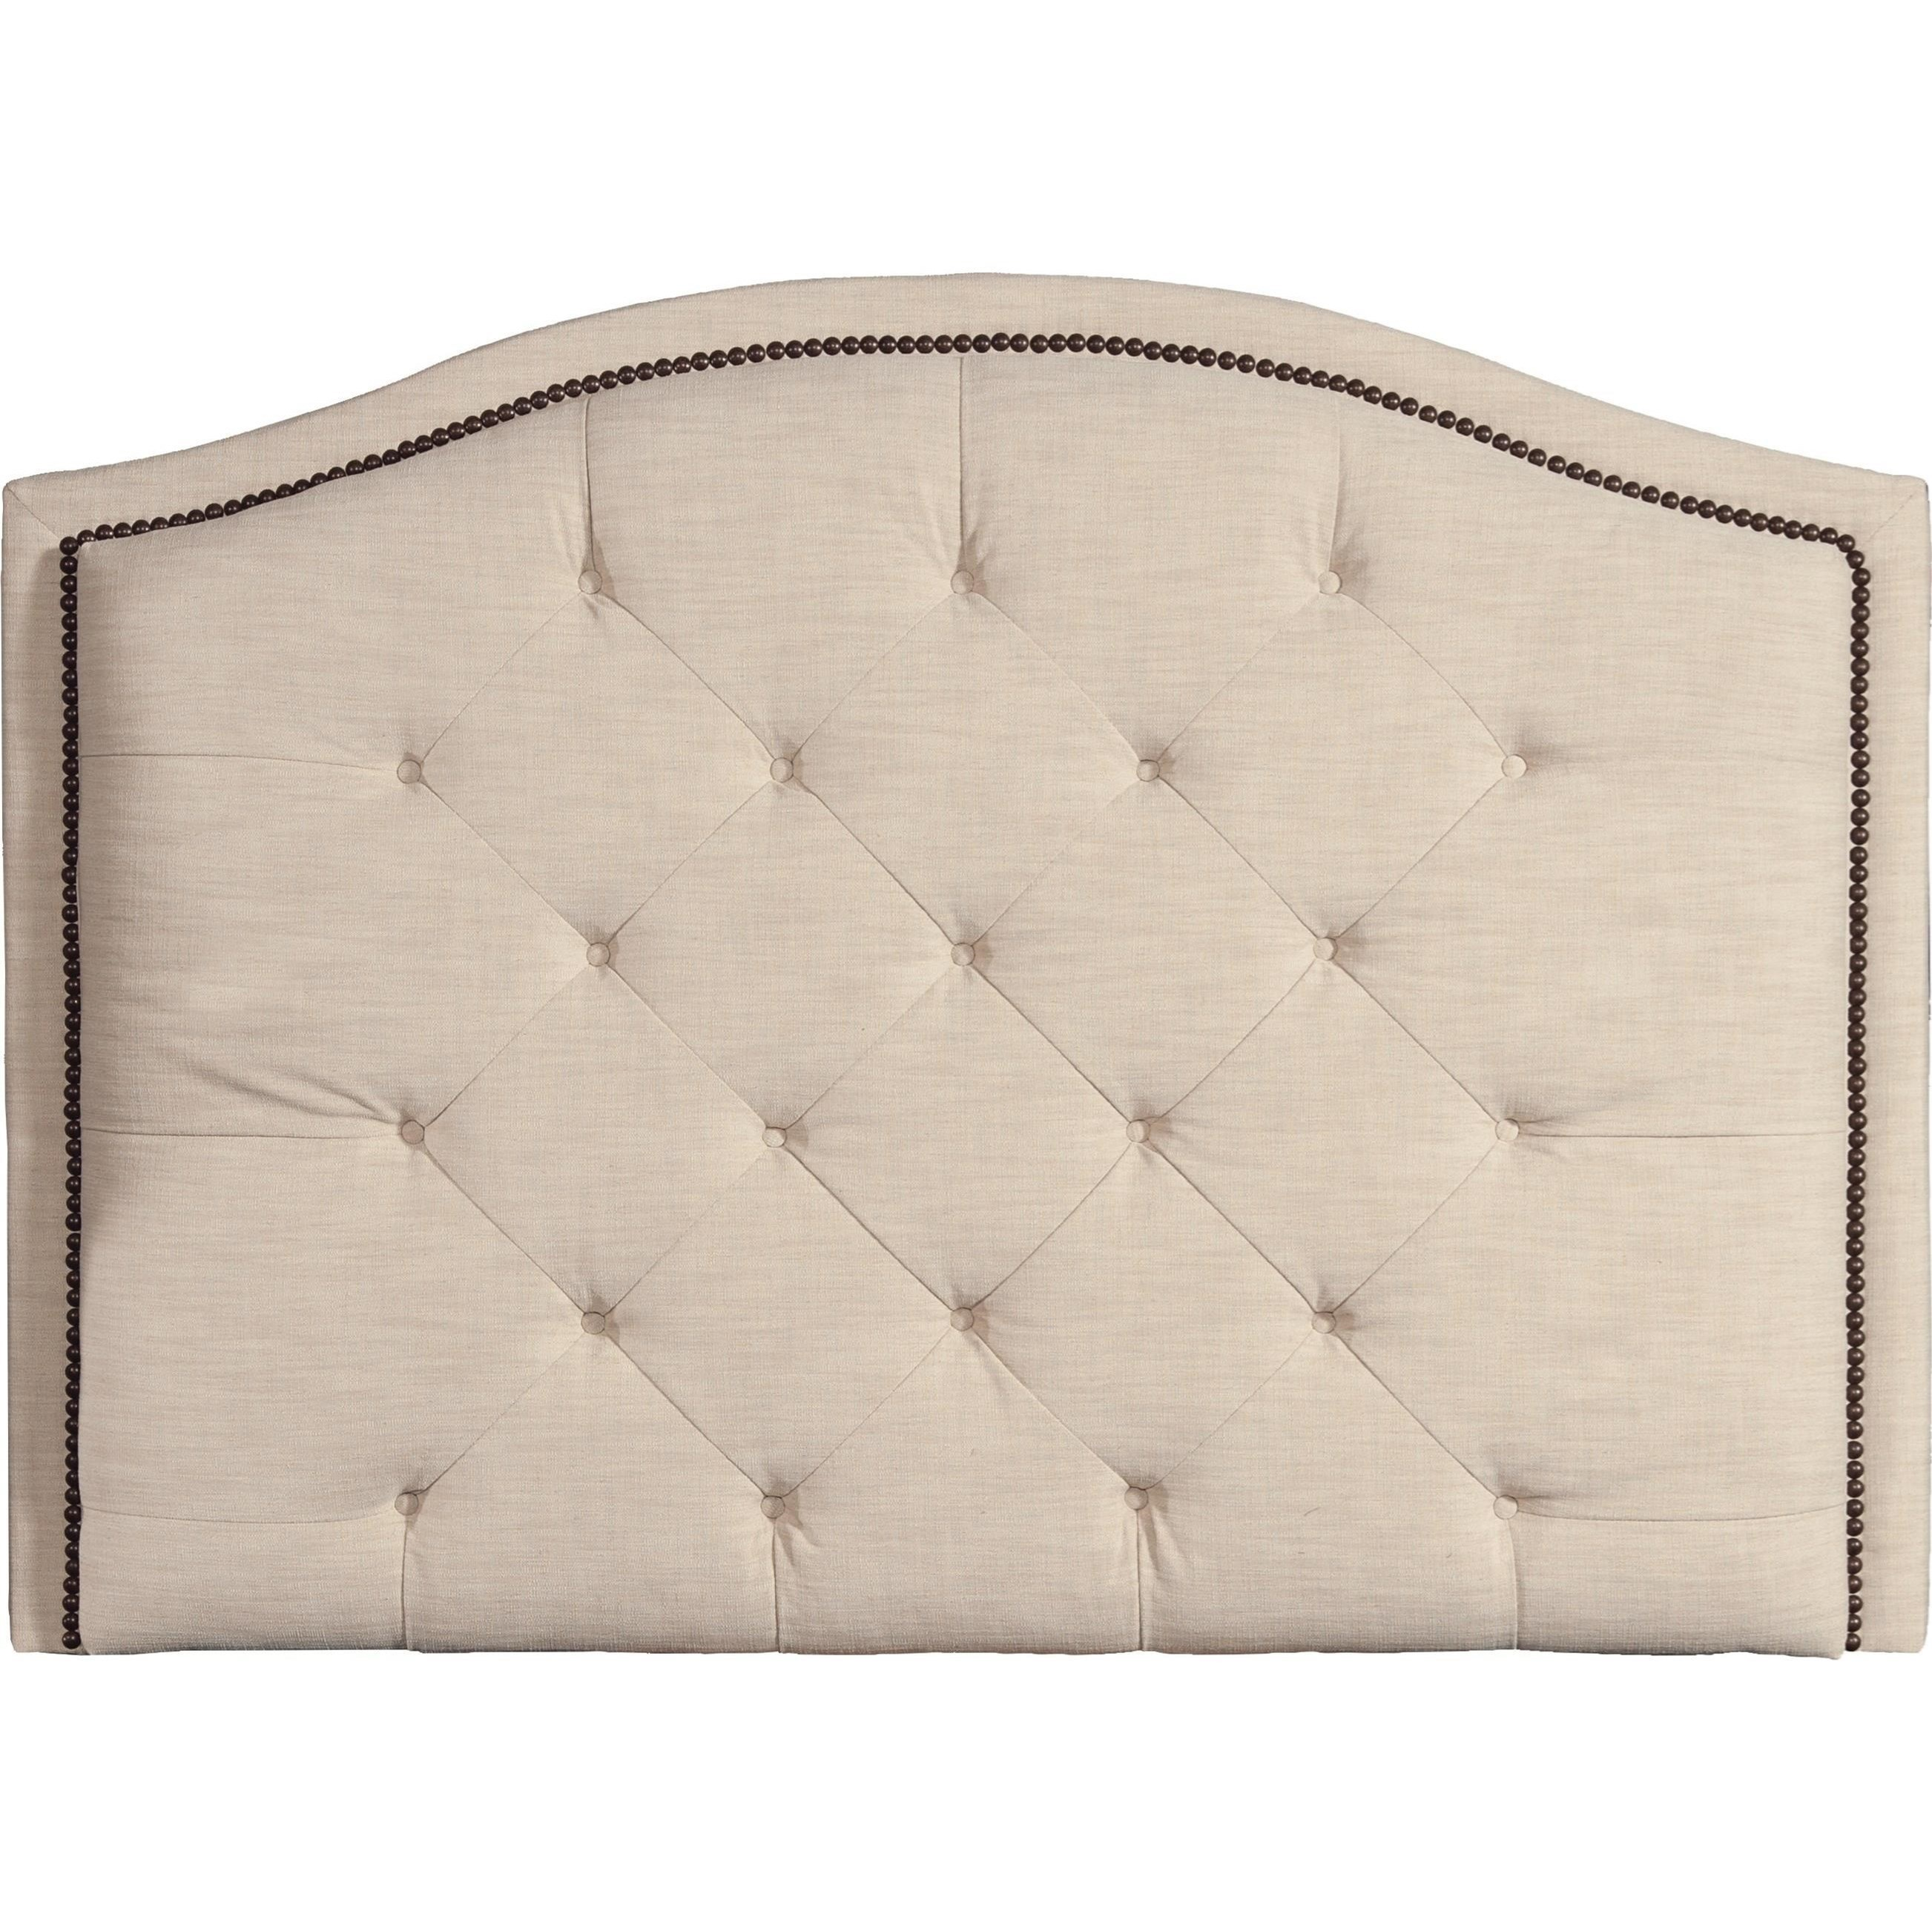 7040 Full Headboard by Mayo at Wilcox Furniture